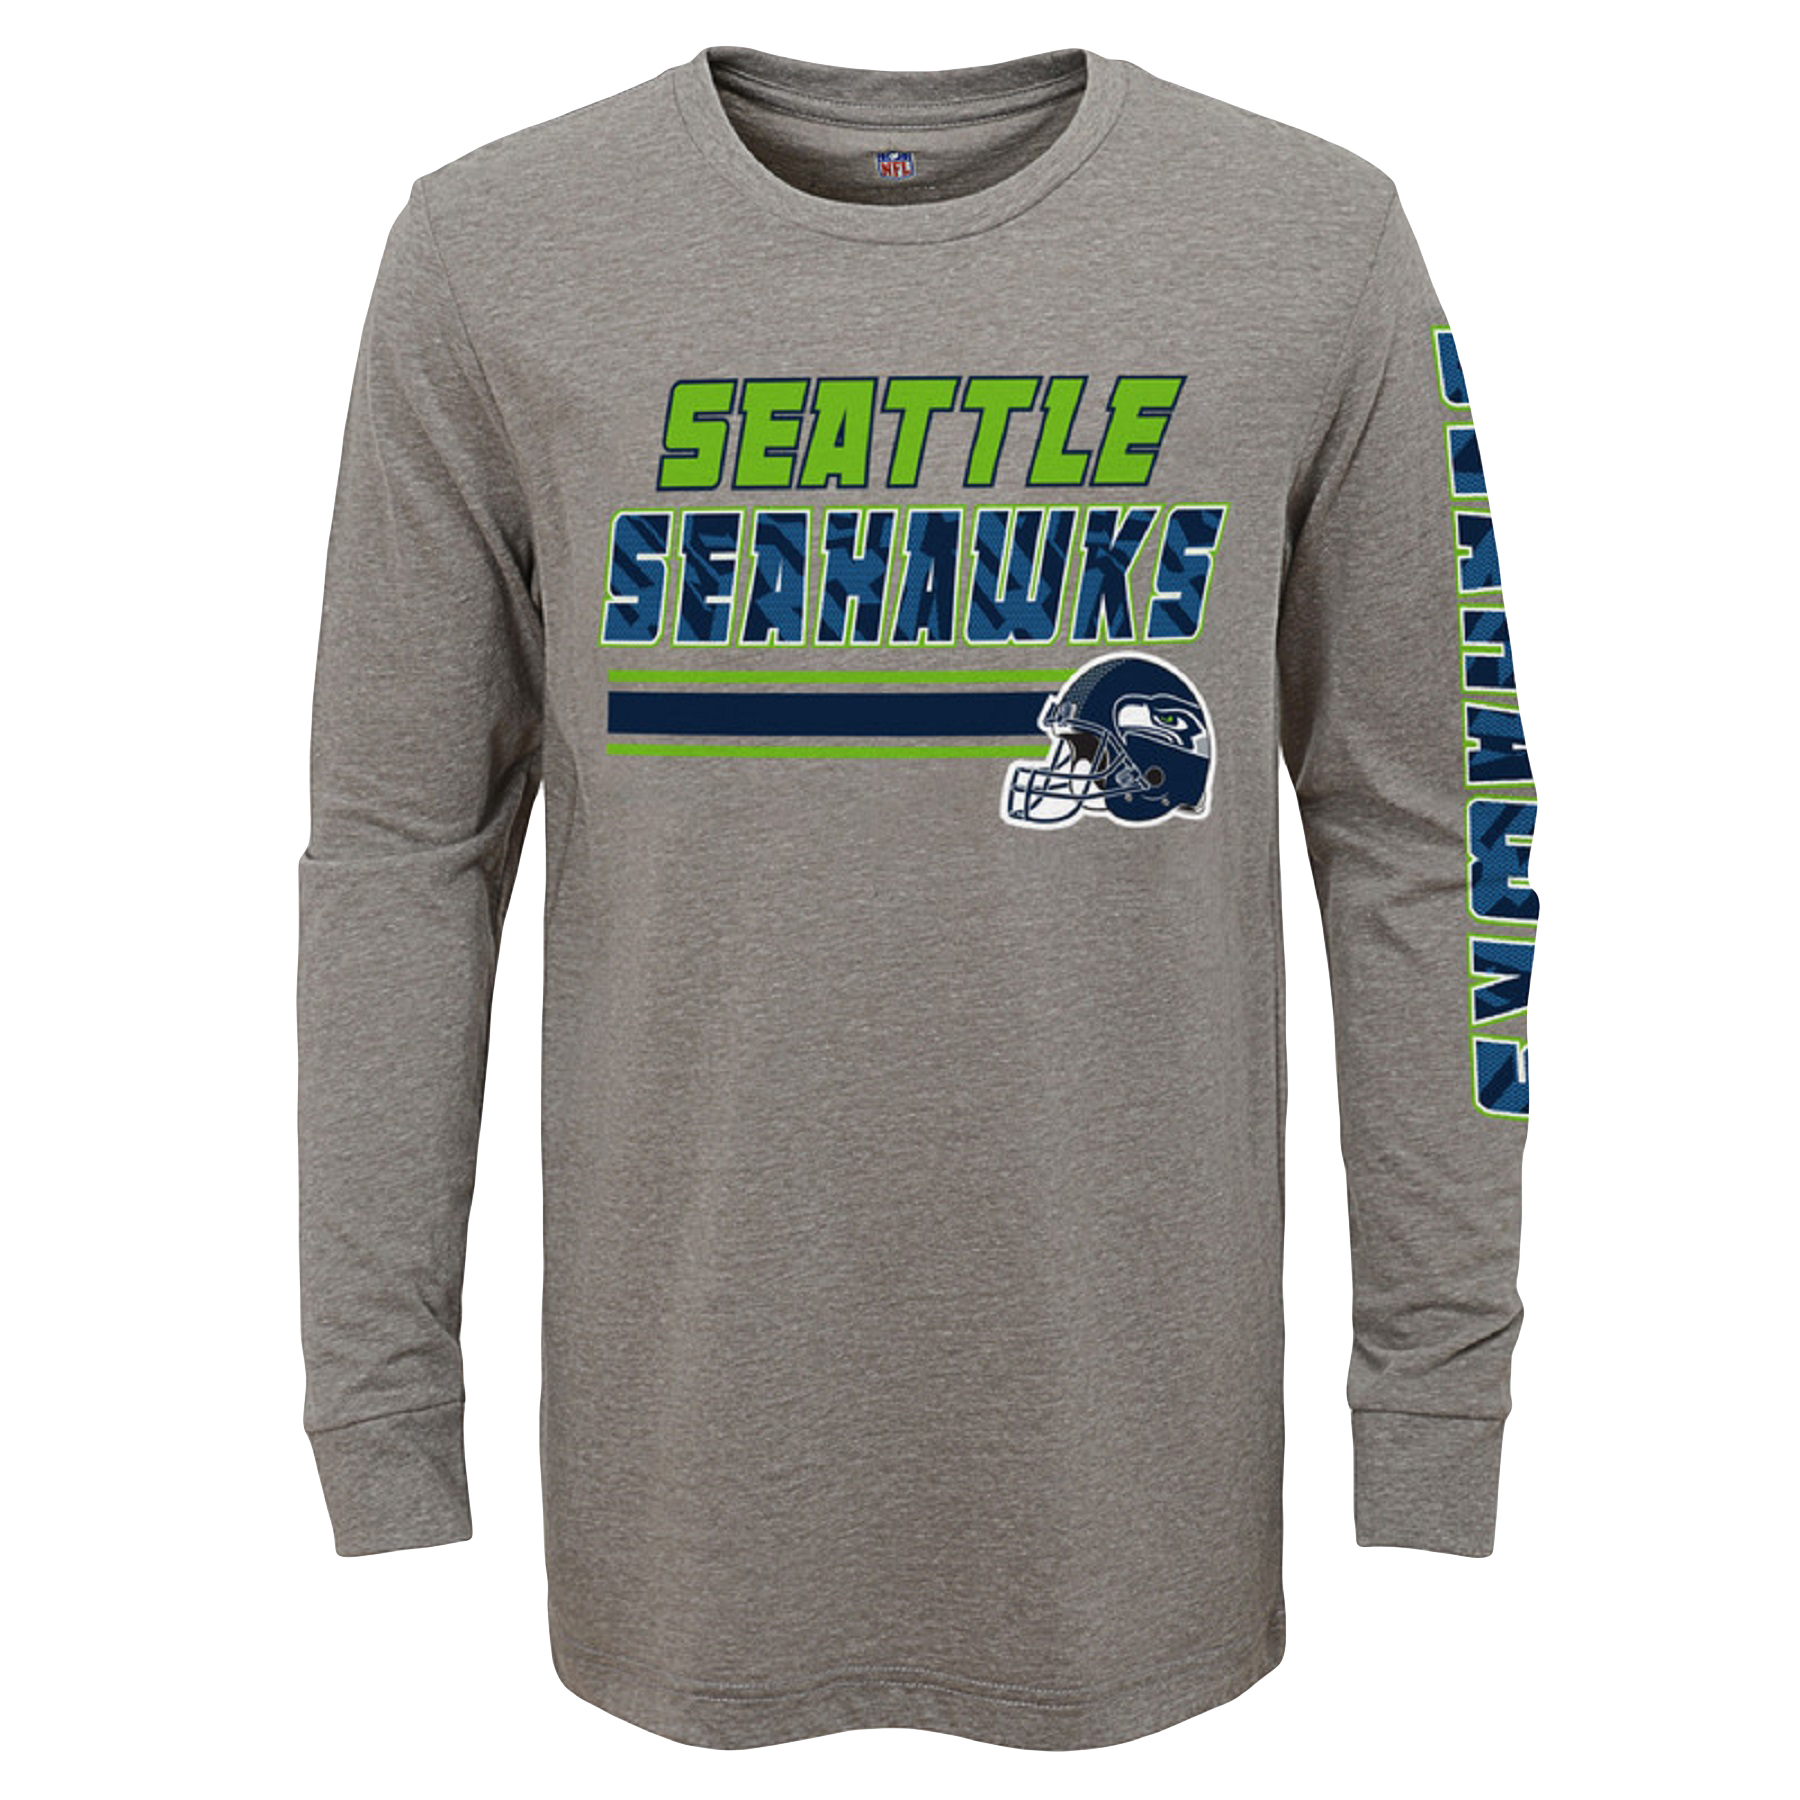 Youth Gray Seattle Seahawks Long Sleeve T-Shirt